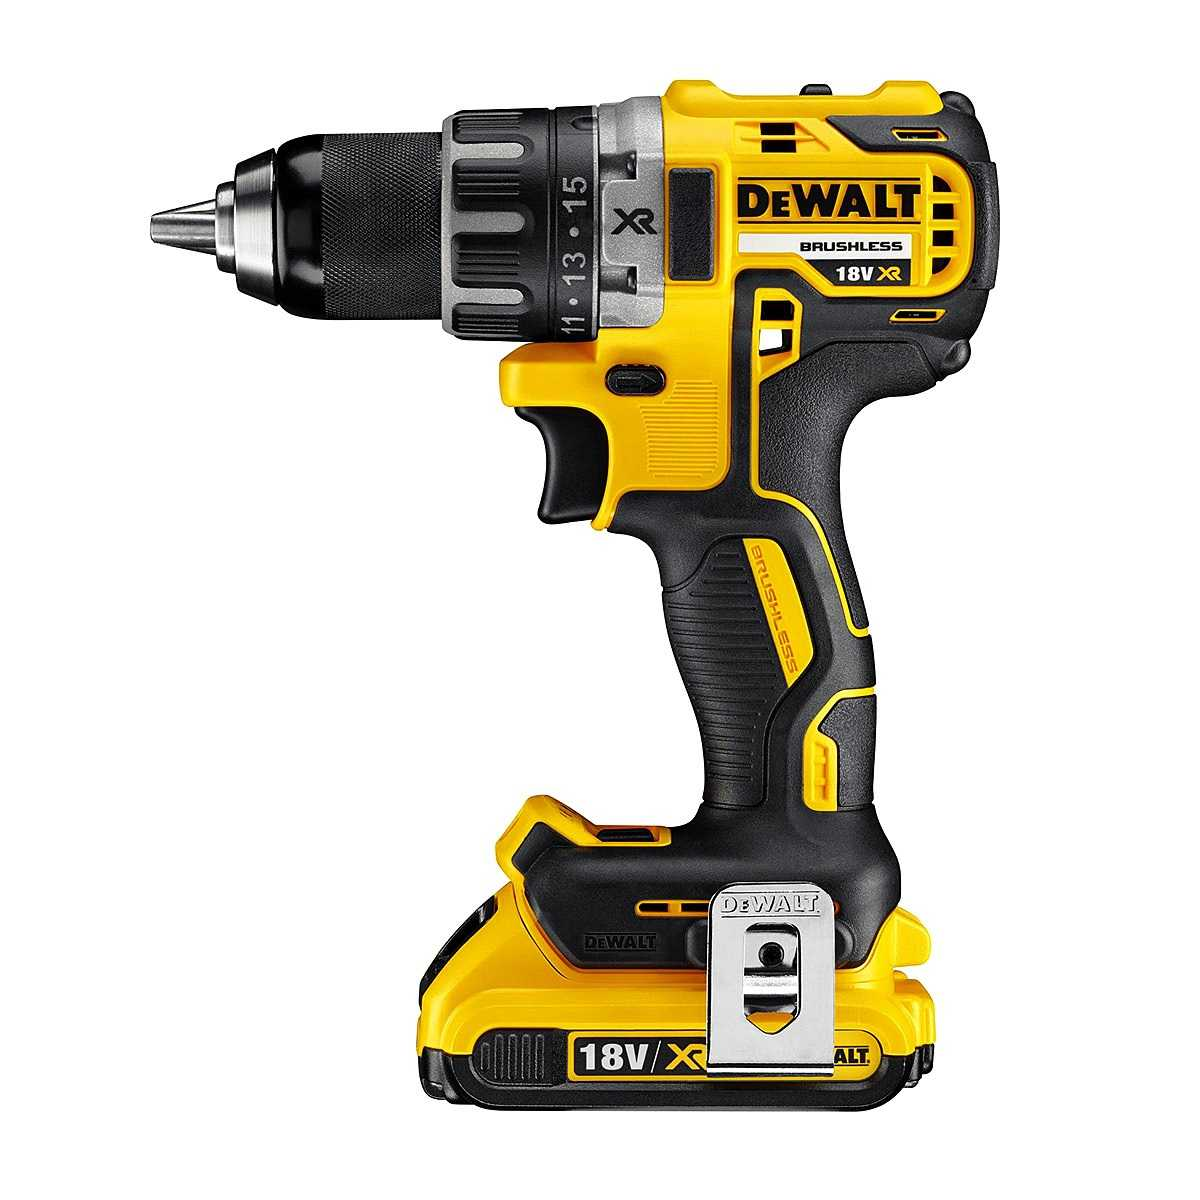 Dewalt dcd791d2 20v max xr li ion brushless compact drill for Dewalt 20v brushless motor